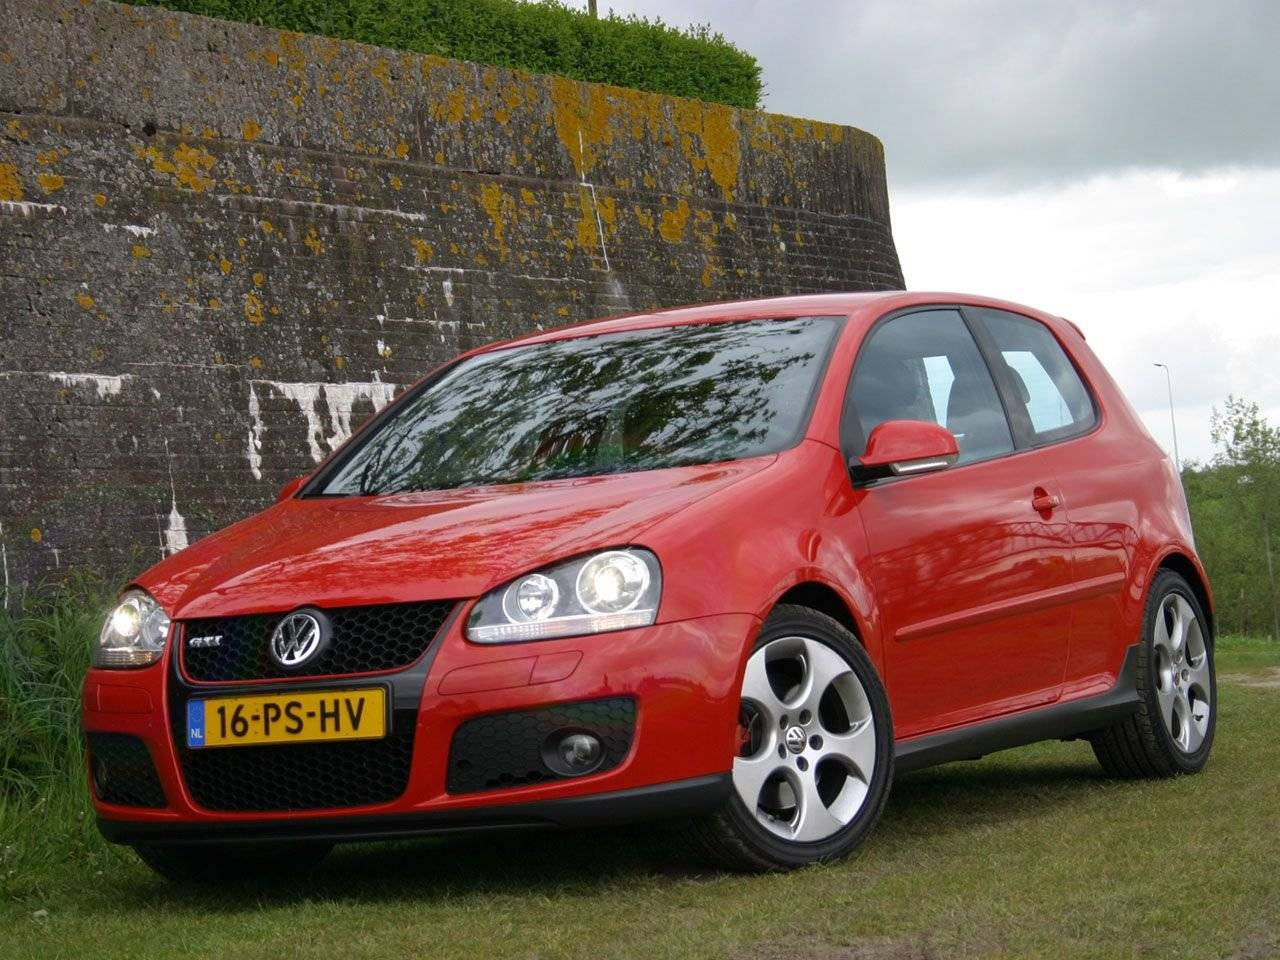 test een chte gti volkswagen golf v gti autotests. Black Bedroom Furniture Sets. Home Design Ideas